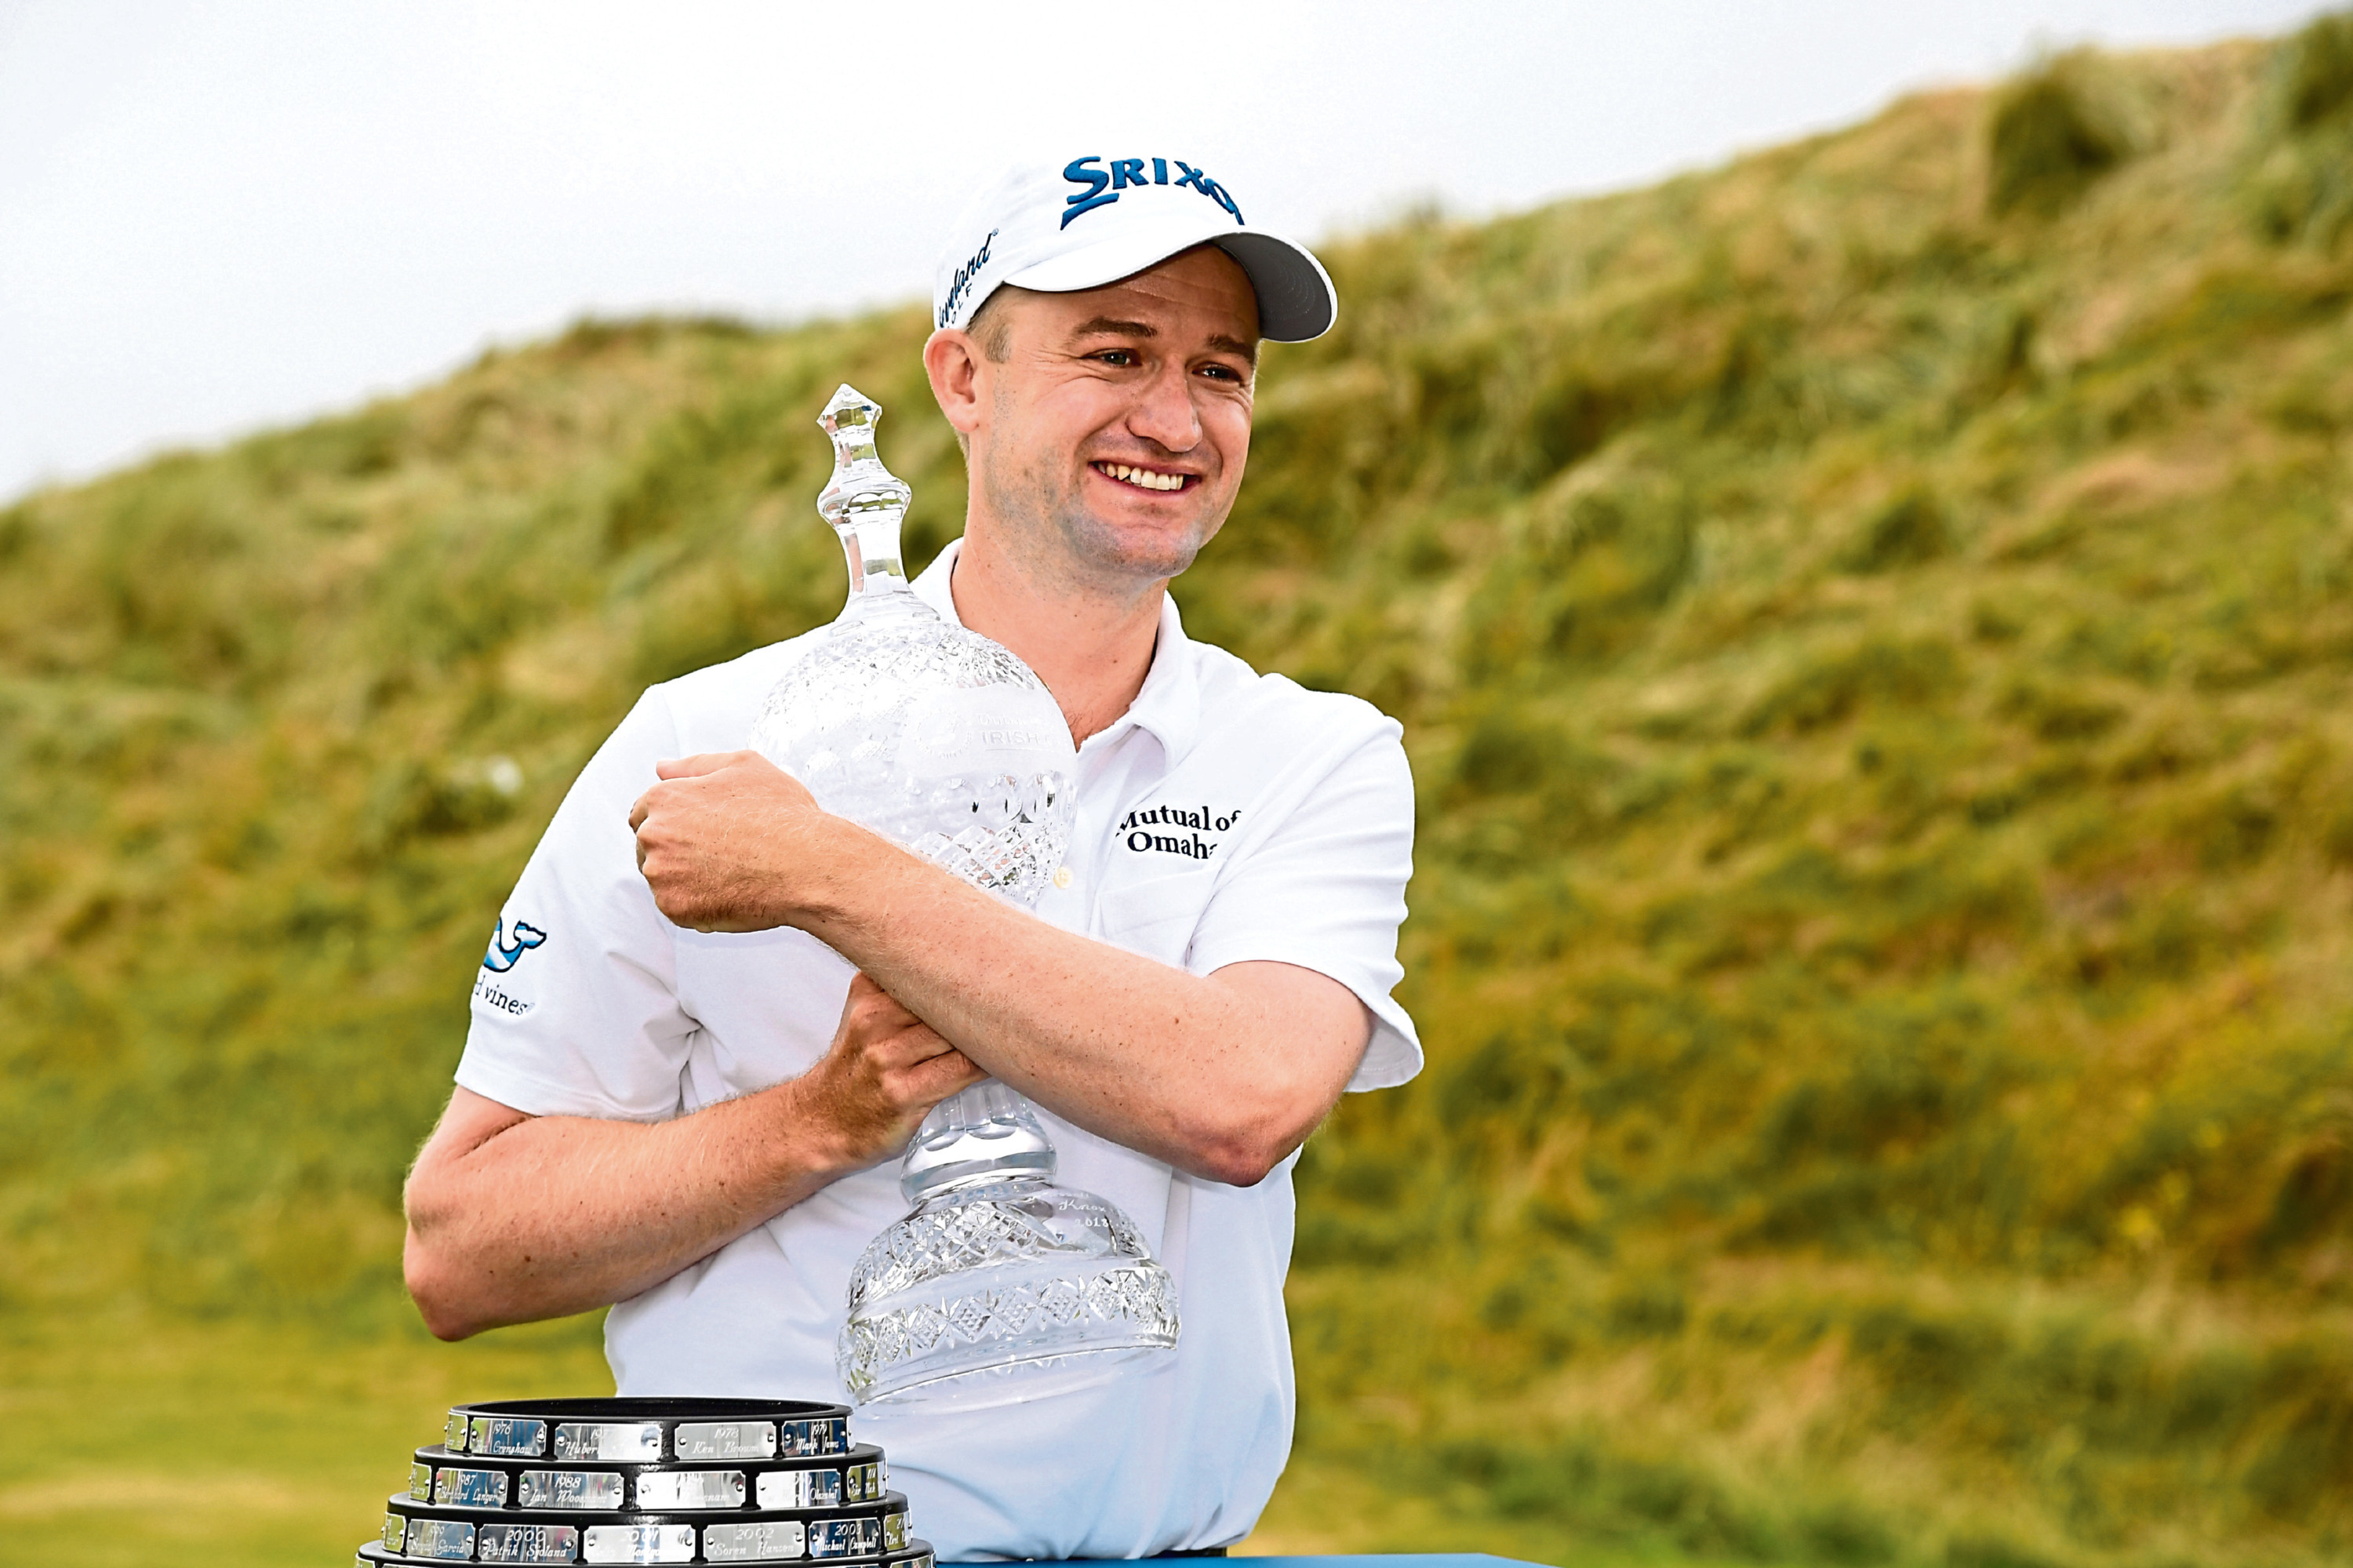 DONEGAL, IRELAND - JULY 08:    Russell Knox of Scotland poses with the trophy following his victory on the 18th green during a playoff at the end of the final round of the Dubai Duty Free Irish Open at Ballyliffin Golf Club on July 8, 2018 in  Donegal, Ireland. (Photo by Ross Kinnaird/Getty Images)